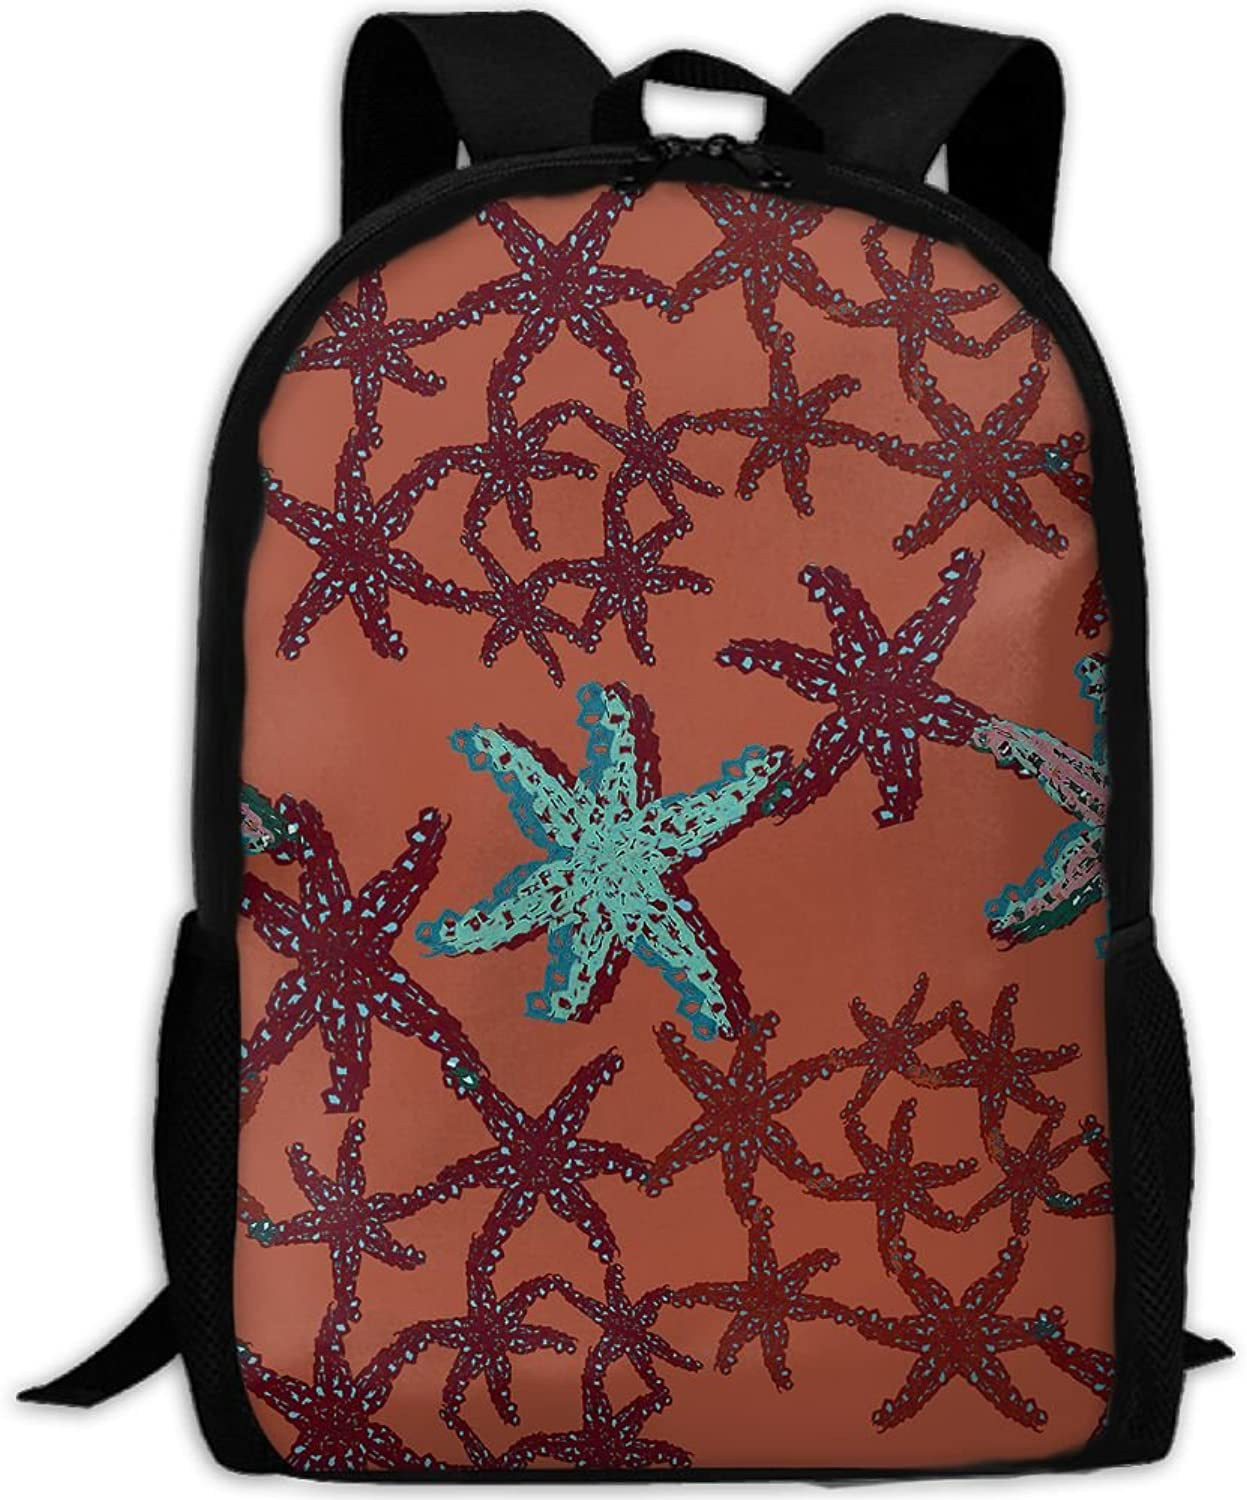 Adult Backpack Red bluee Starfish College Daypack Oxford Bag Unisex Business Travel Sports Bag with Adjustable Strap